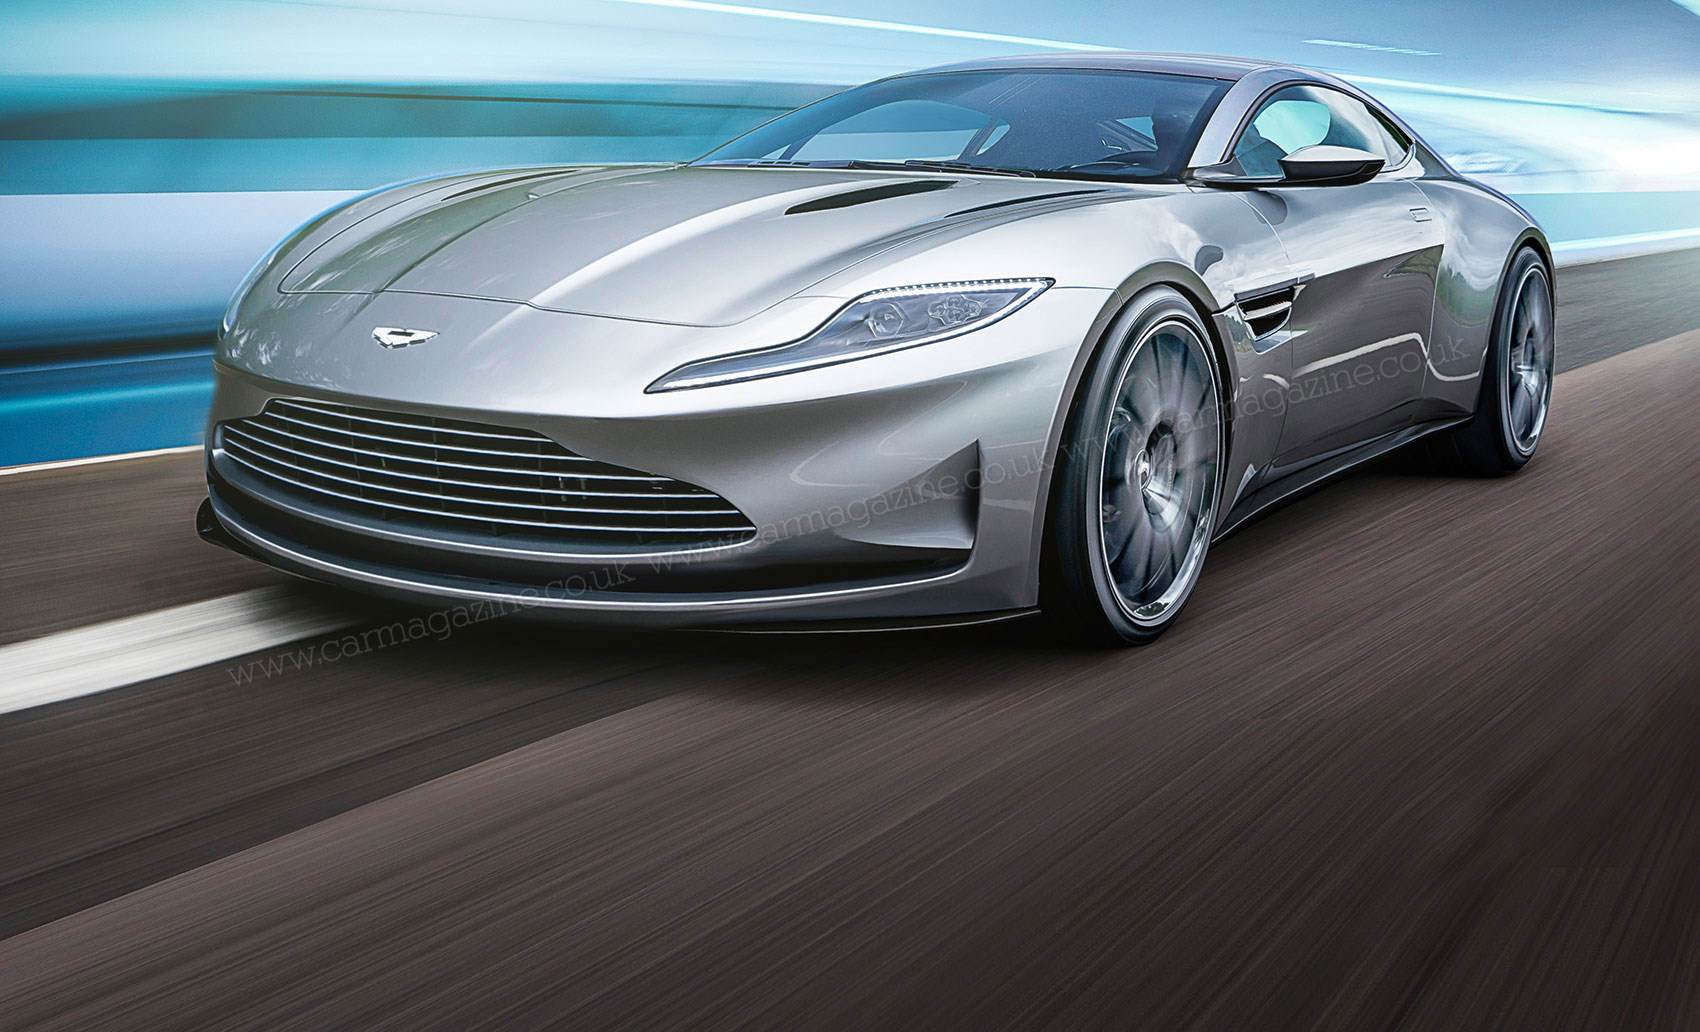 2016 39 s most wanted 8 aston martin db11 car december 2015 car magazine. Black Bedroom Furniture Sets. Home Design Ideas